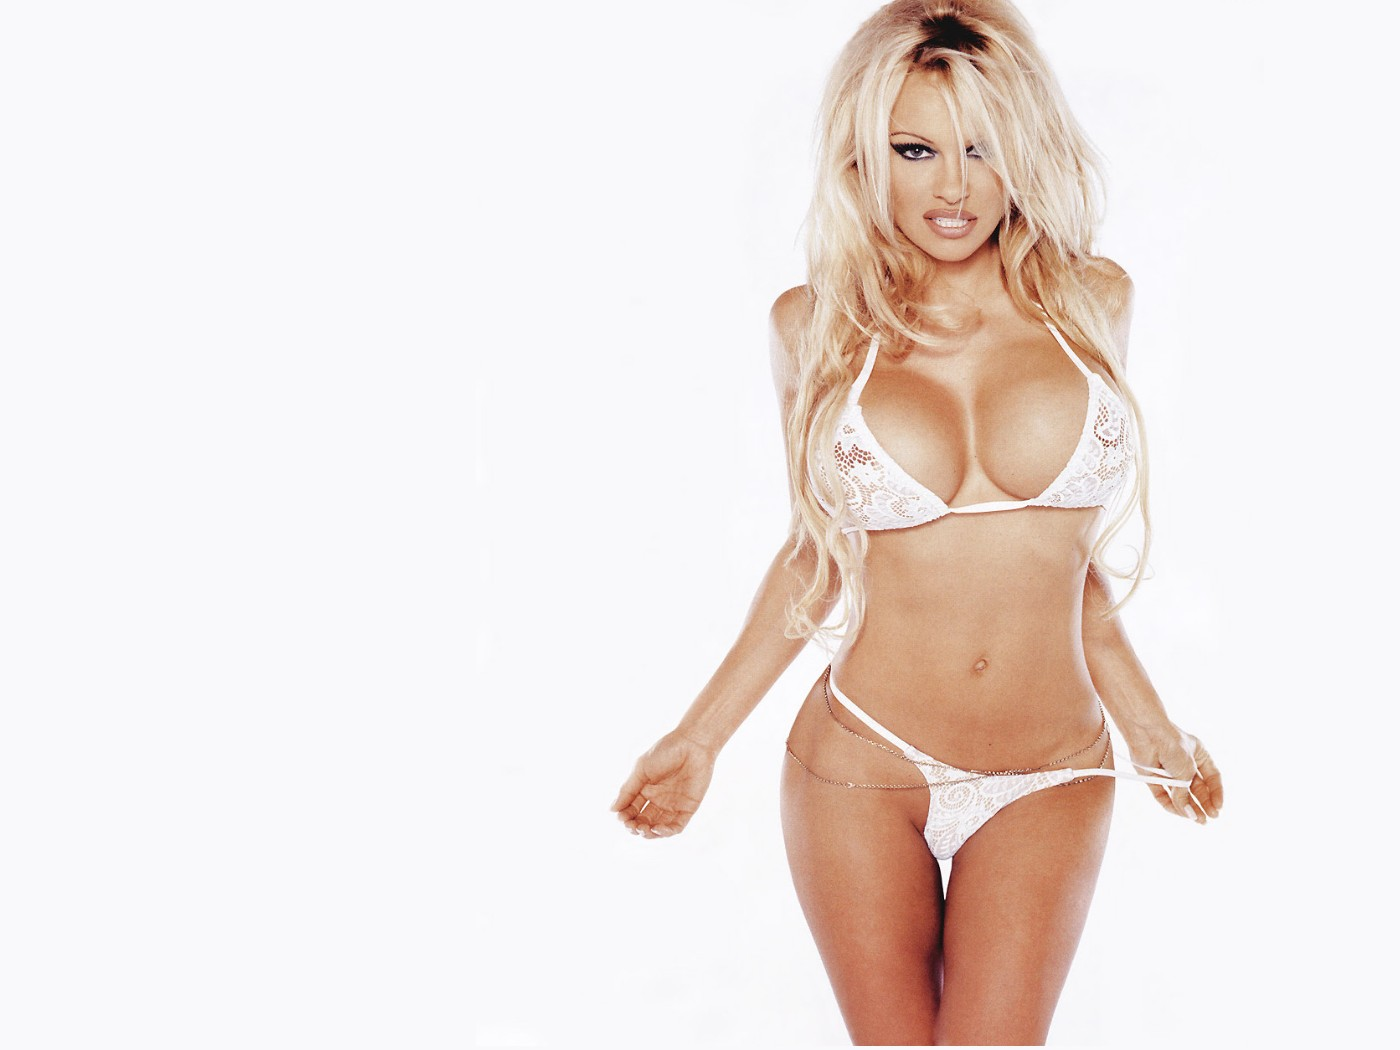 Pamela Anderson Wallpapers Photos Images Pamela